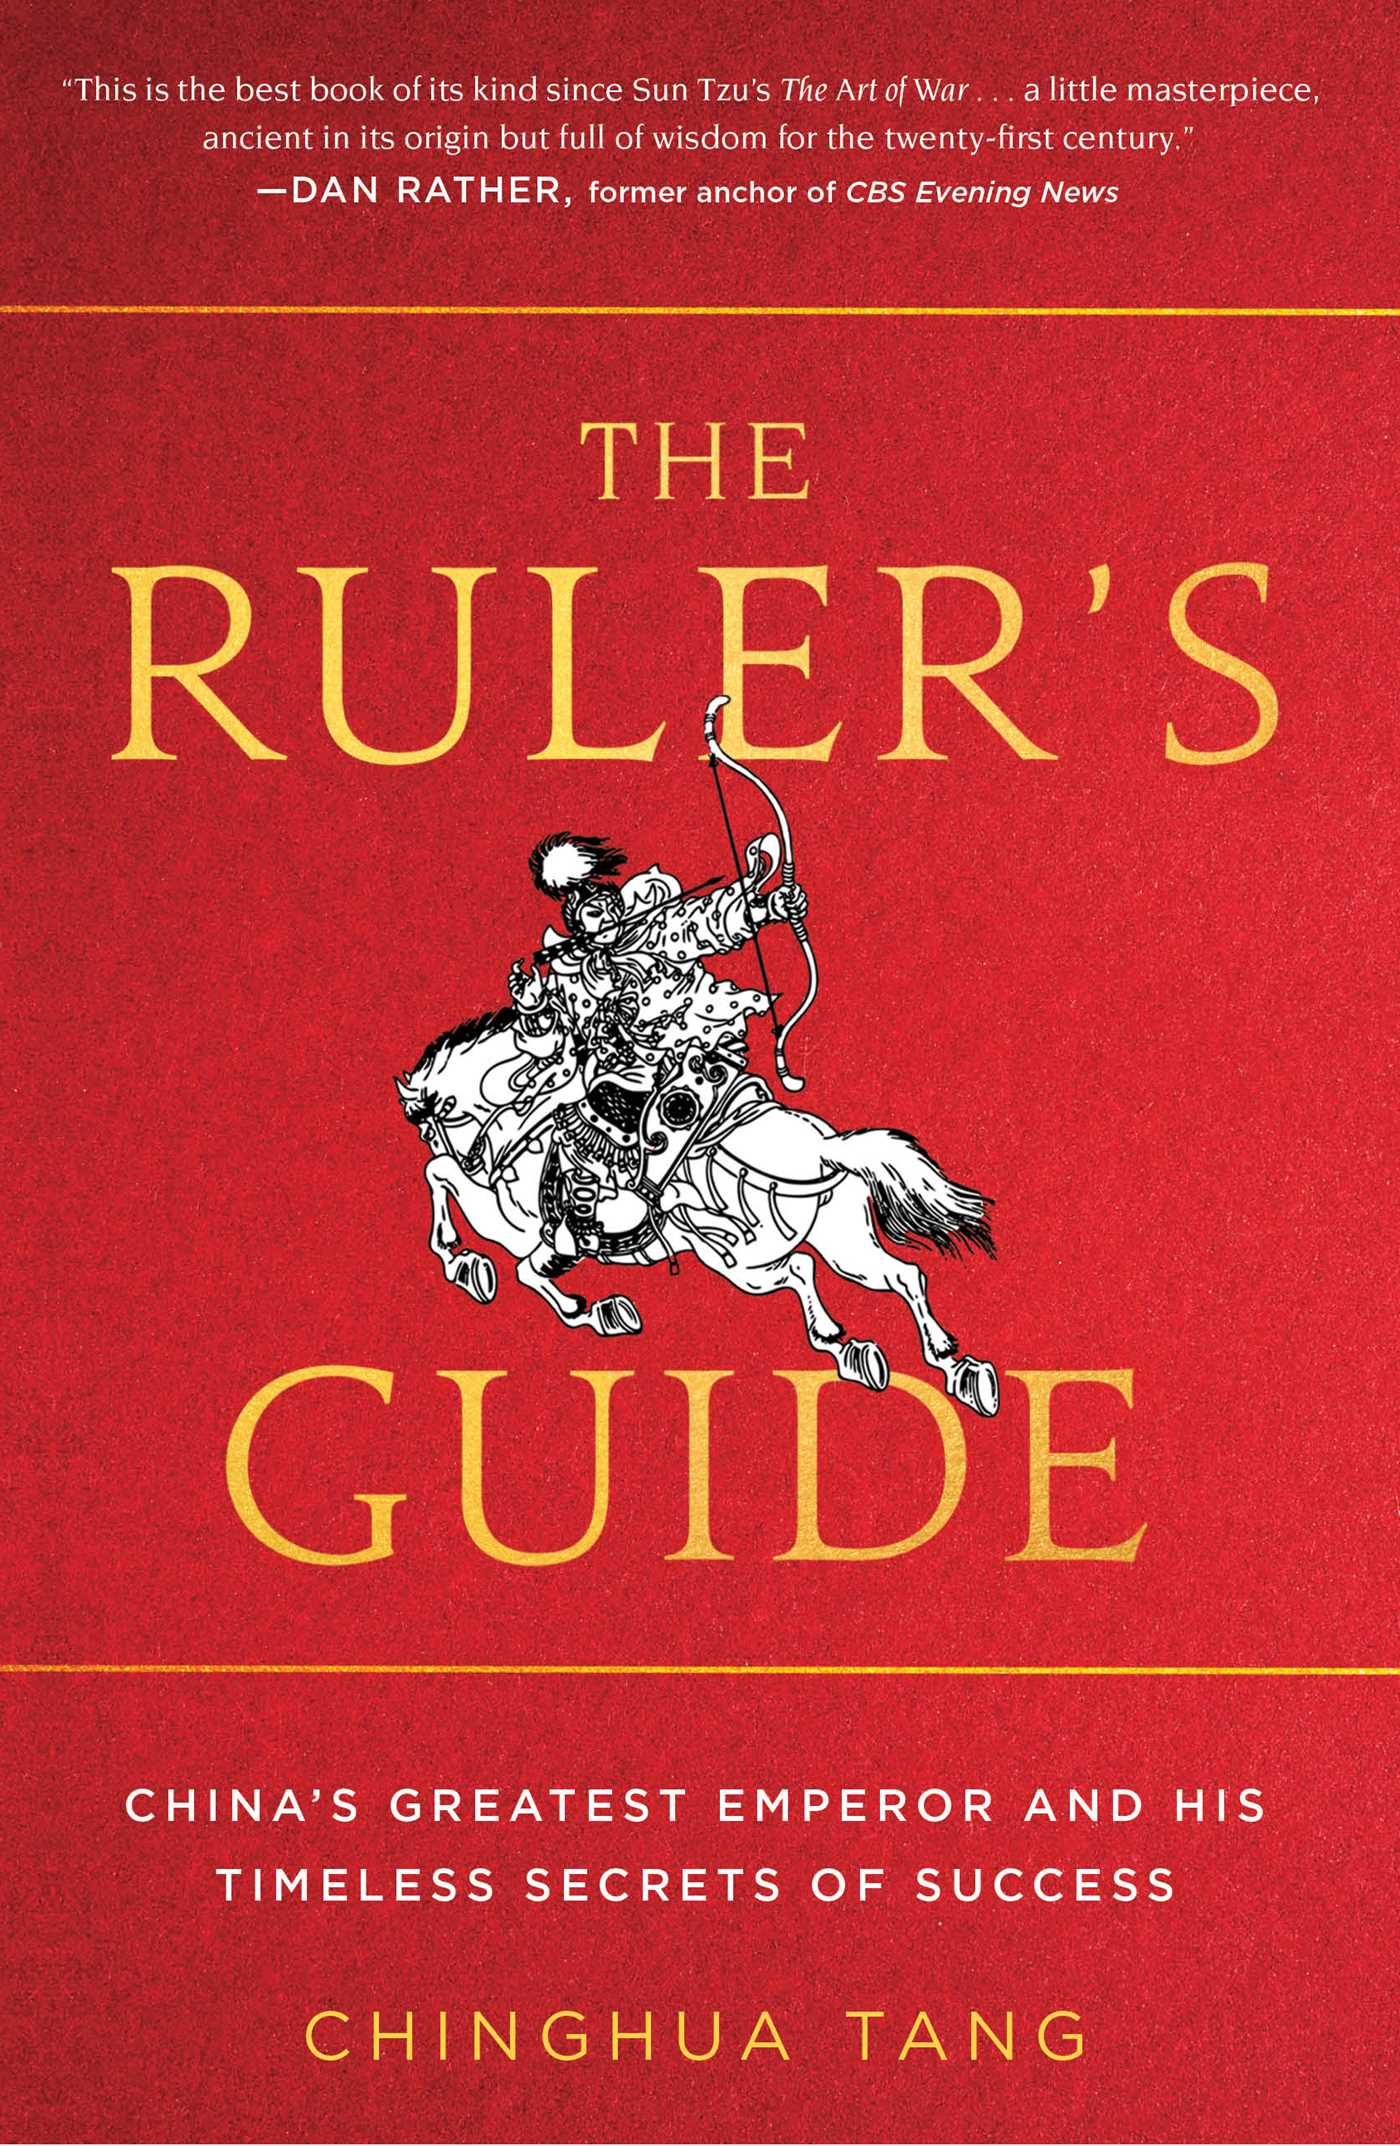 The rulers guide 9781501138782 hr